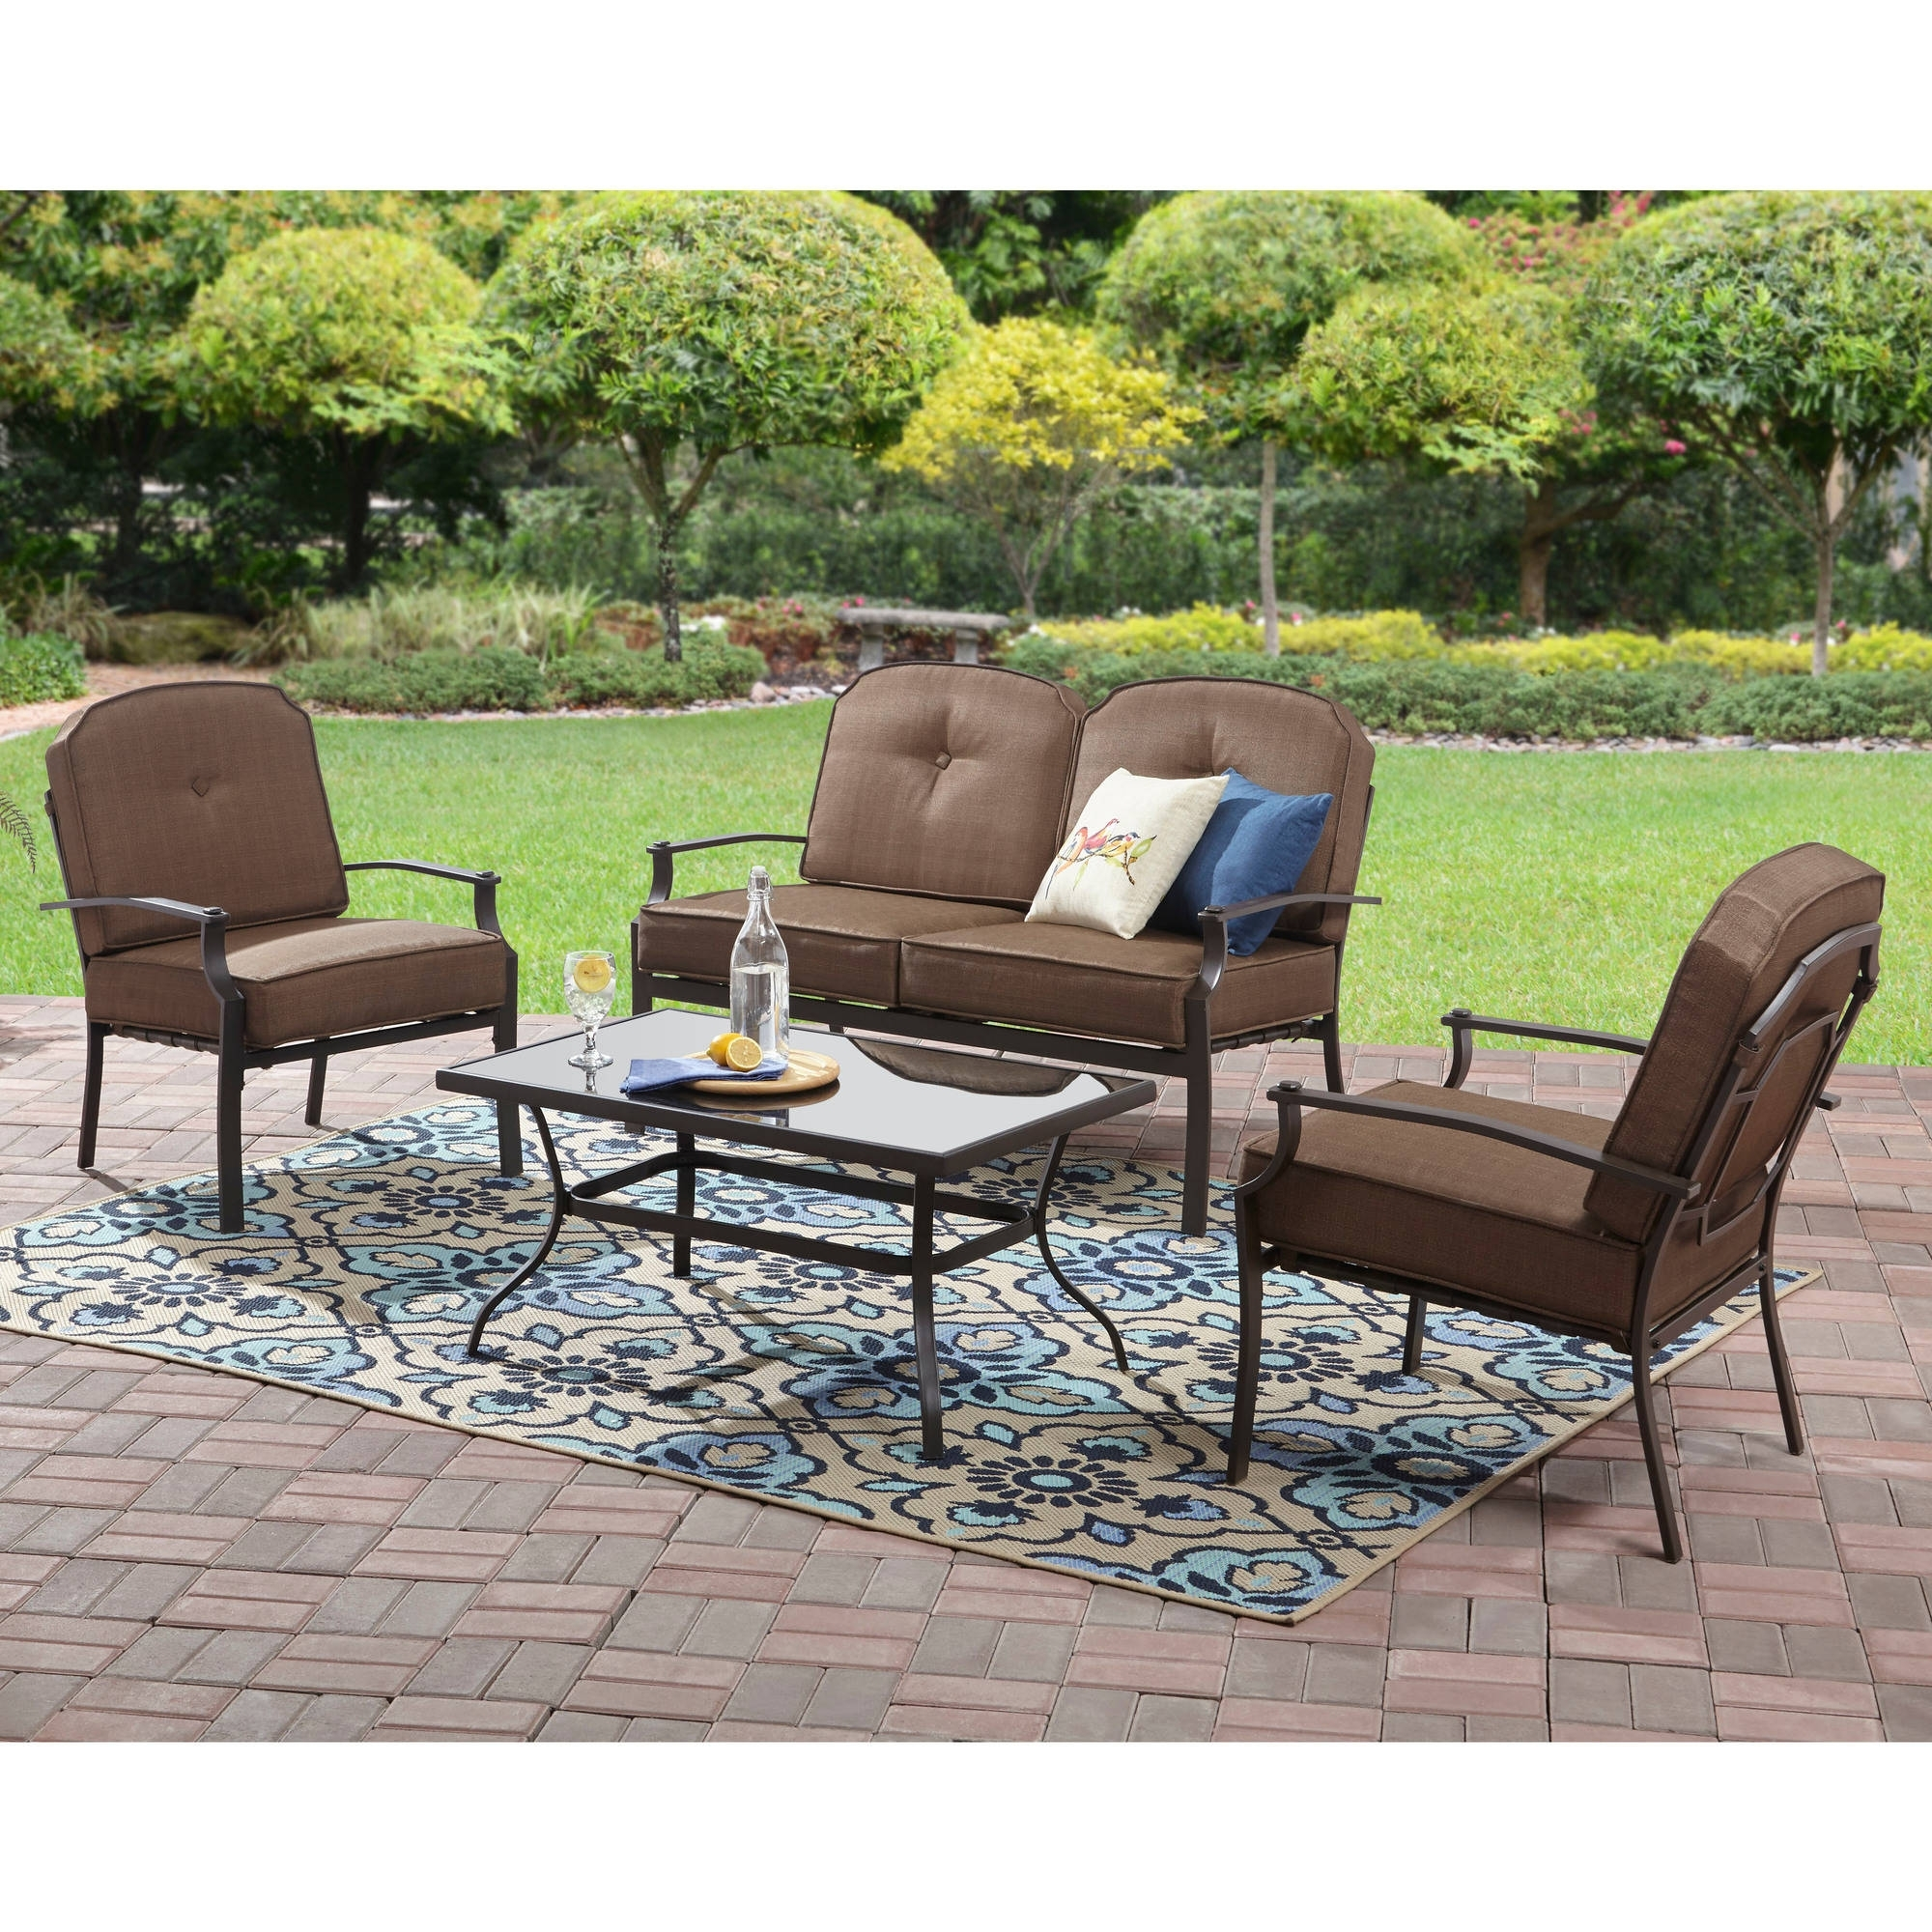 Patio Conversation Sets Pertaining To Widely Used Mainstays Spring Creek 5 Piece Patio Dining Set, Seats 4 – Walmart (View 13 of 20)